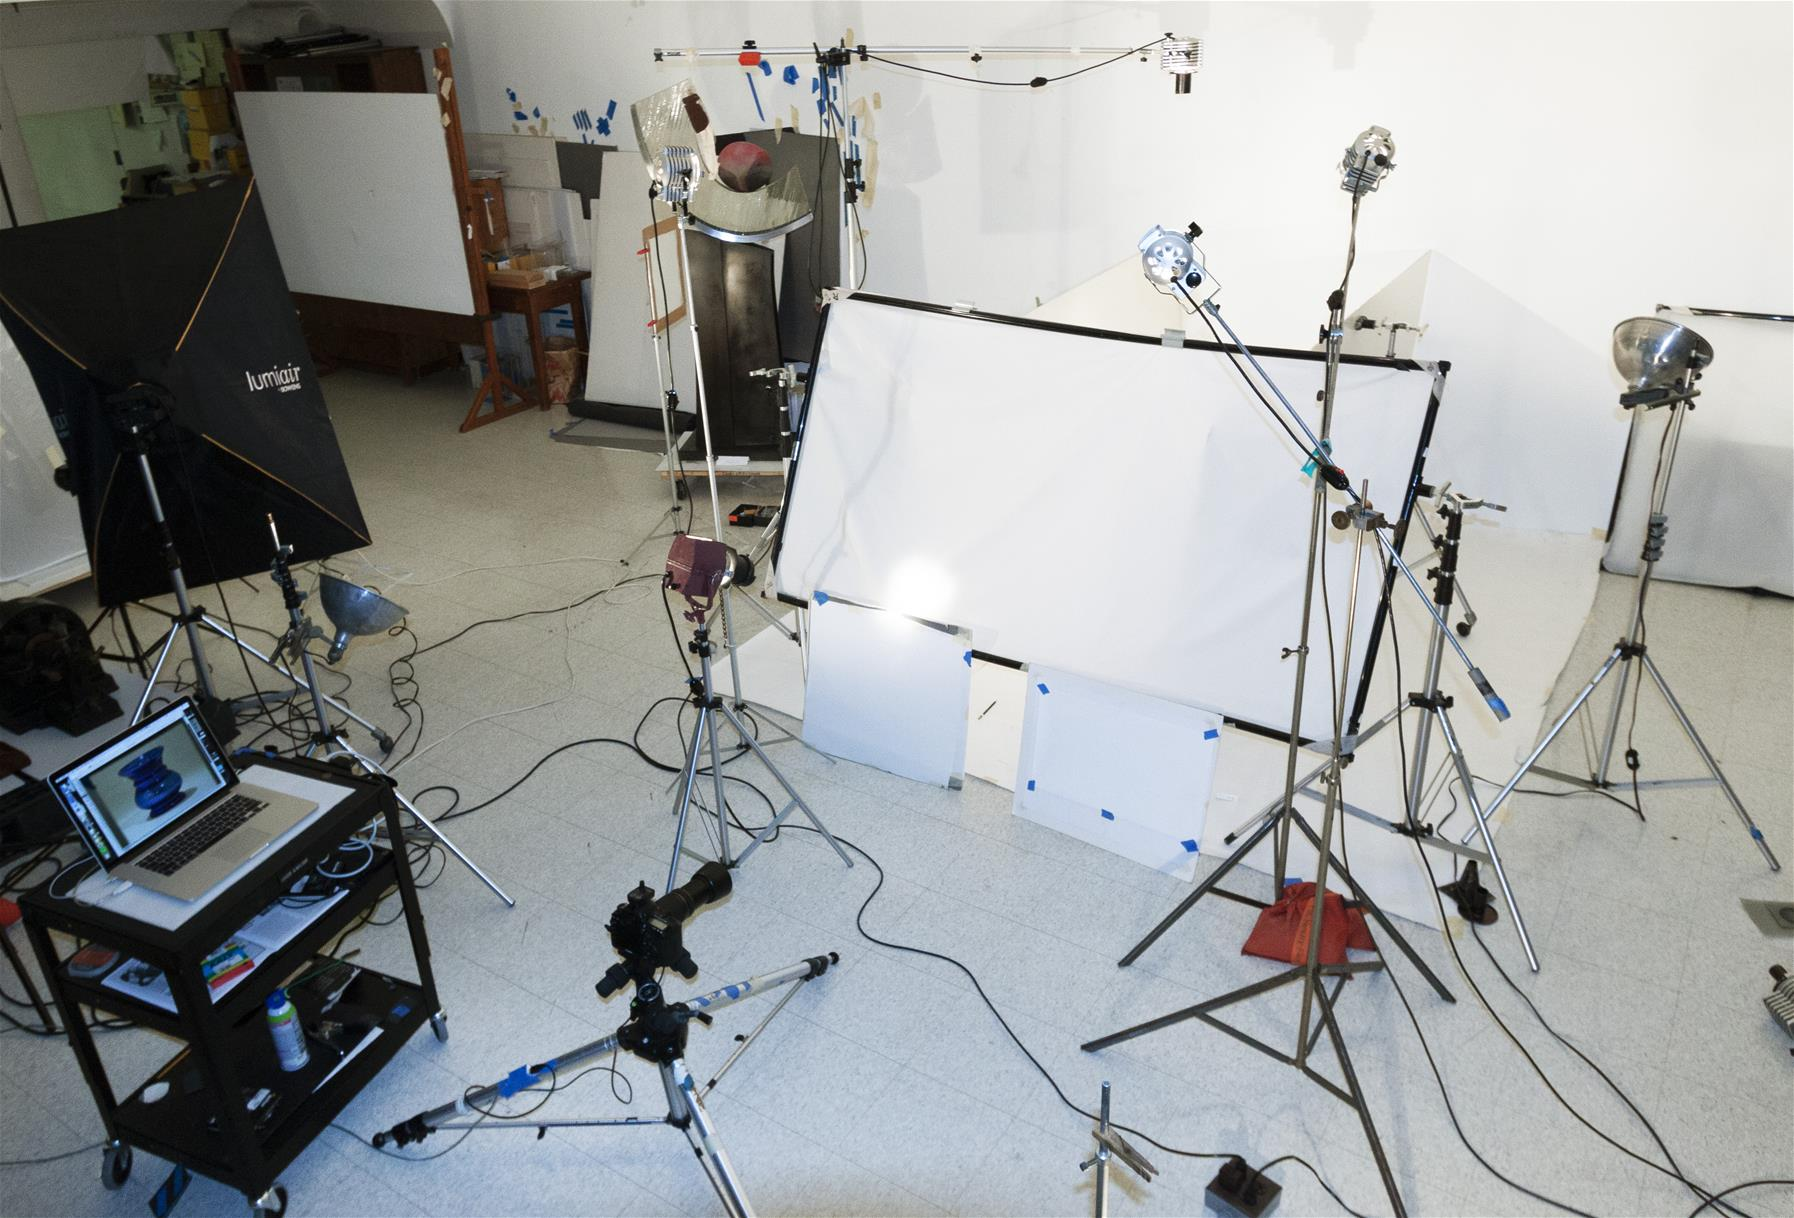 Photo studio with cart with laptop, many lights on stands, area blocked off with white paper